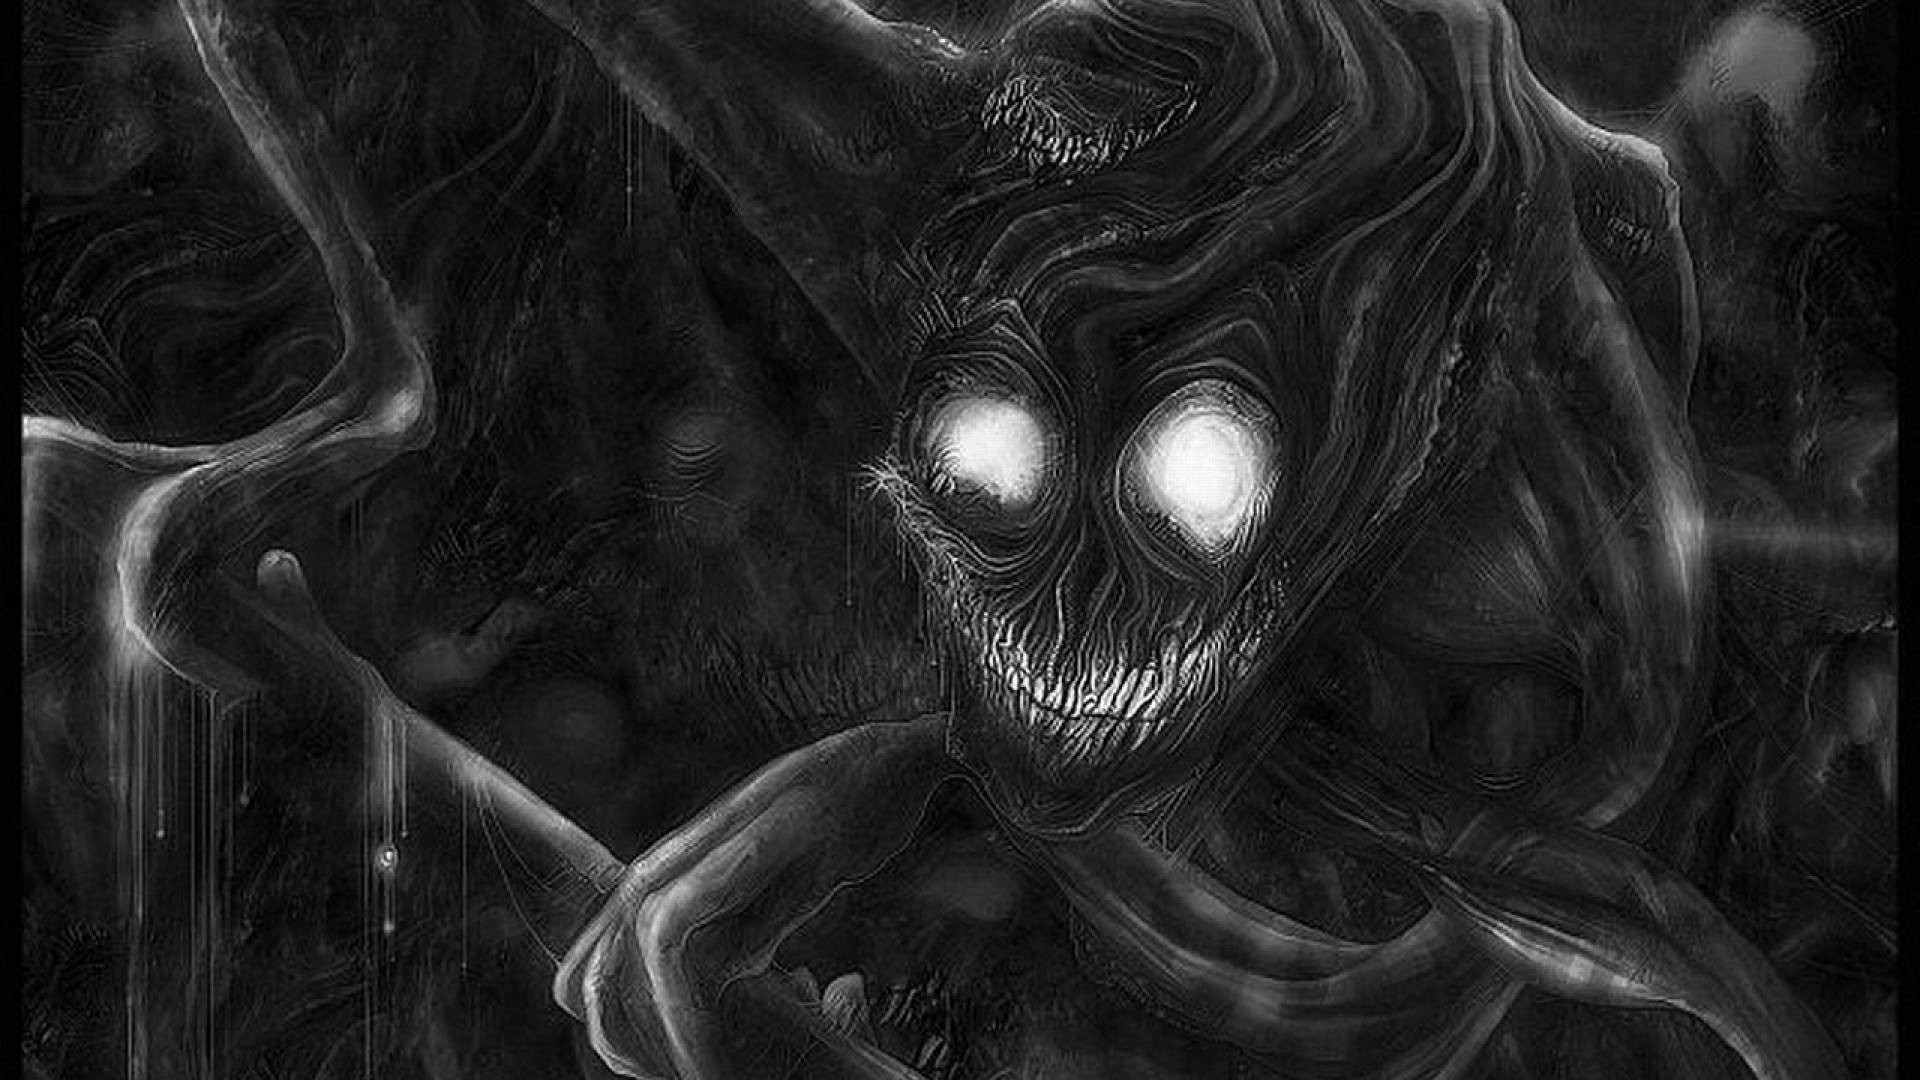 Scary halloween wallpapers for desktop 54 images - Scary halloween wallpaper ...